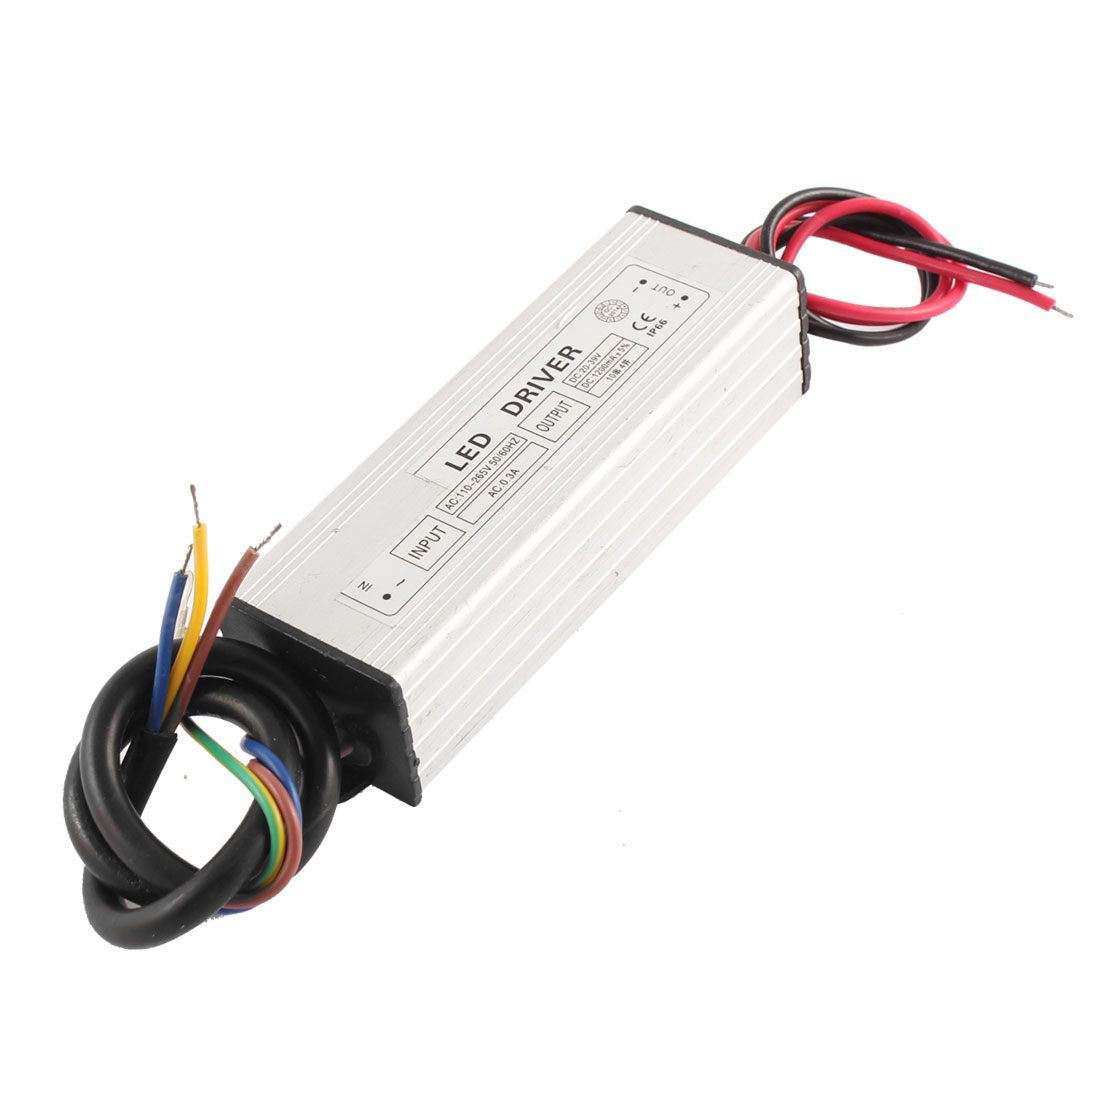 AC 110-265V 0.3A to DC 20-39V 1200mA IP66 10 Parallel 4 Series LED Lightstrip Light Strip Power Supply Driver